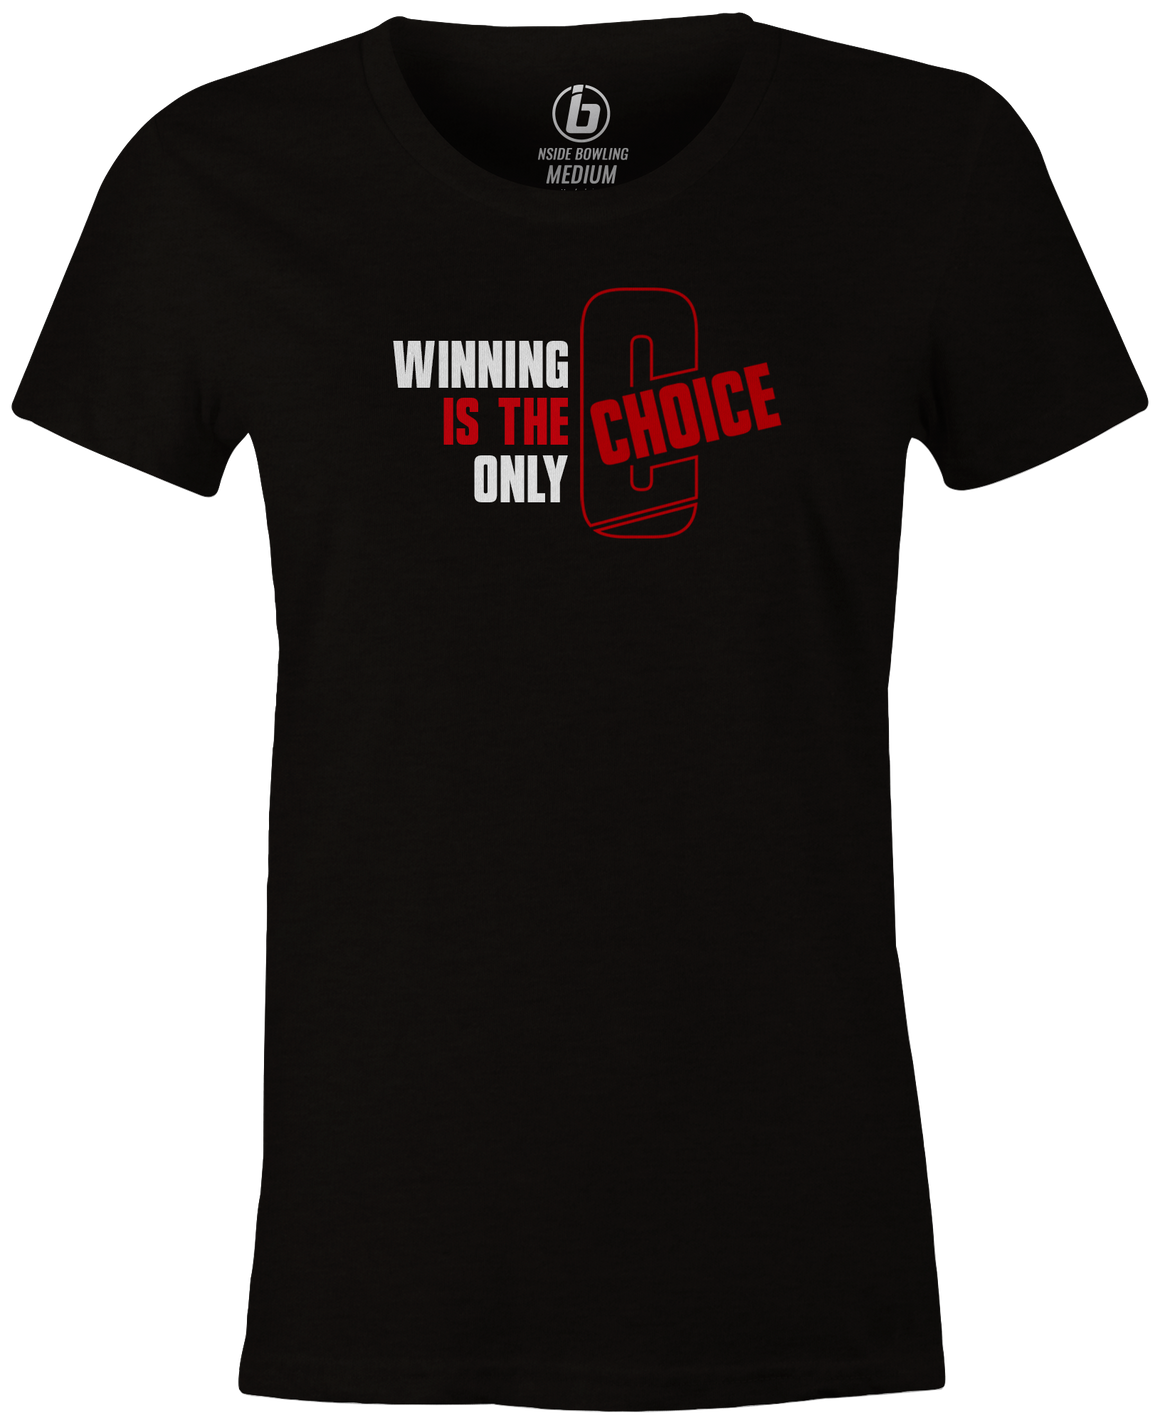 Ebonite Choice Women's T-Shirt, Red, Bowling, Bowling ball, tshirt, tee shirt, tee-shirt, tee.